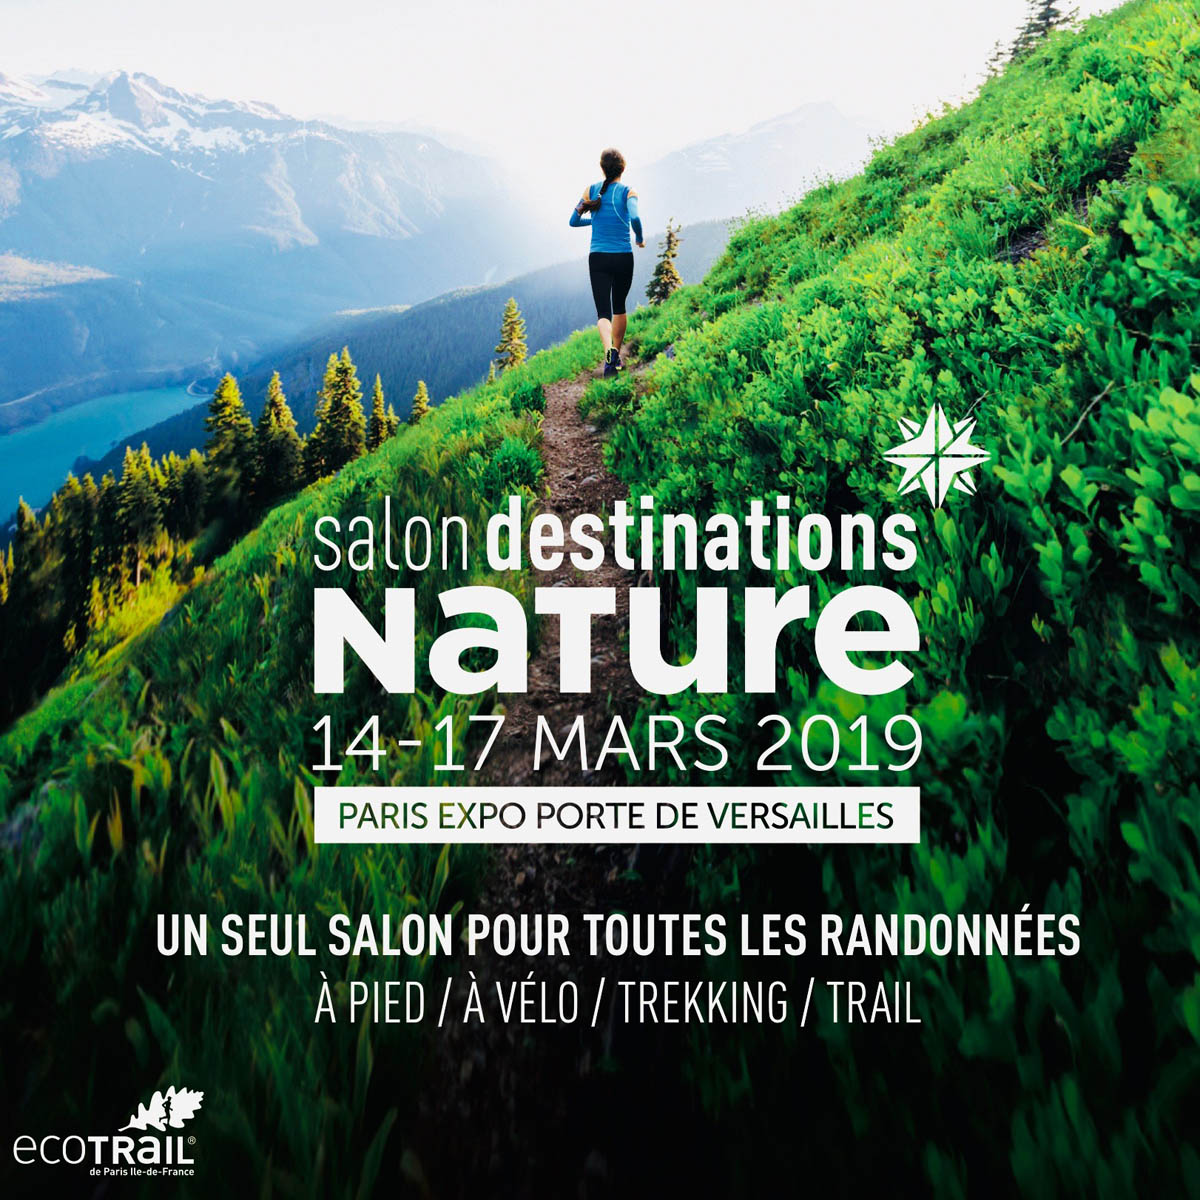 Salon Destination Nature : allez-y gratuitement !